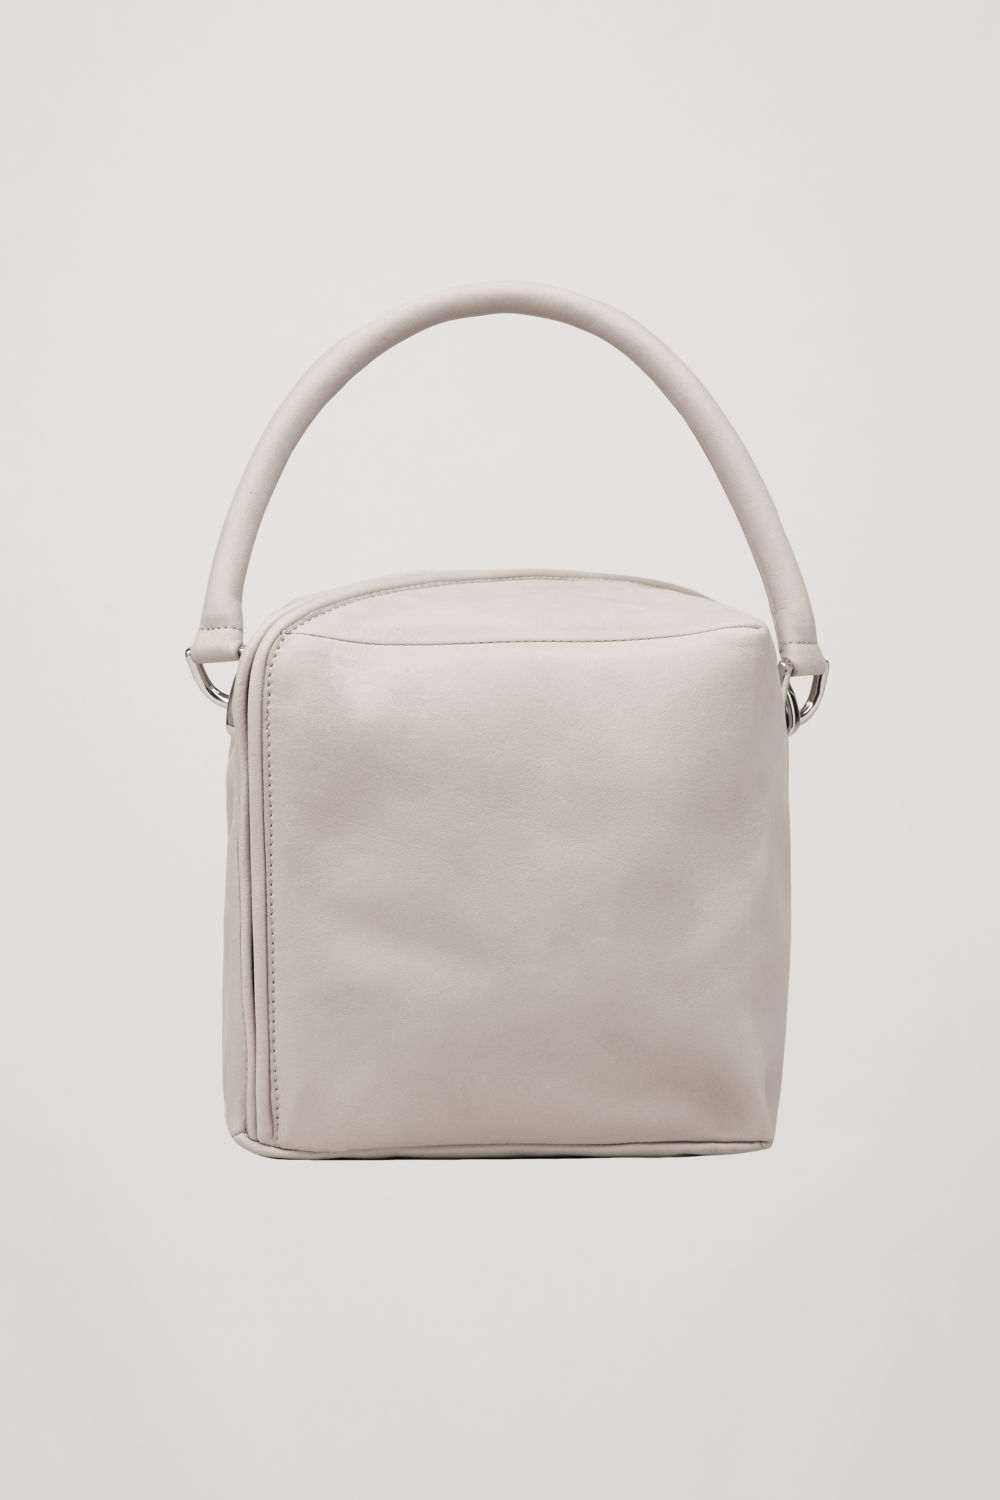 SQUARE LEATHER CROSS-BODY BAG